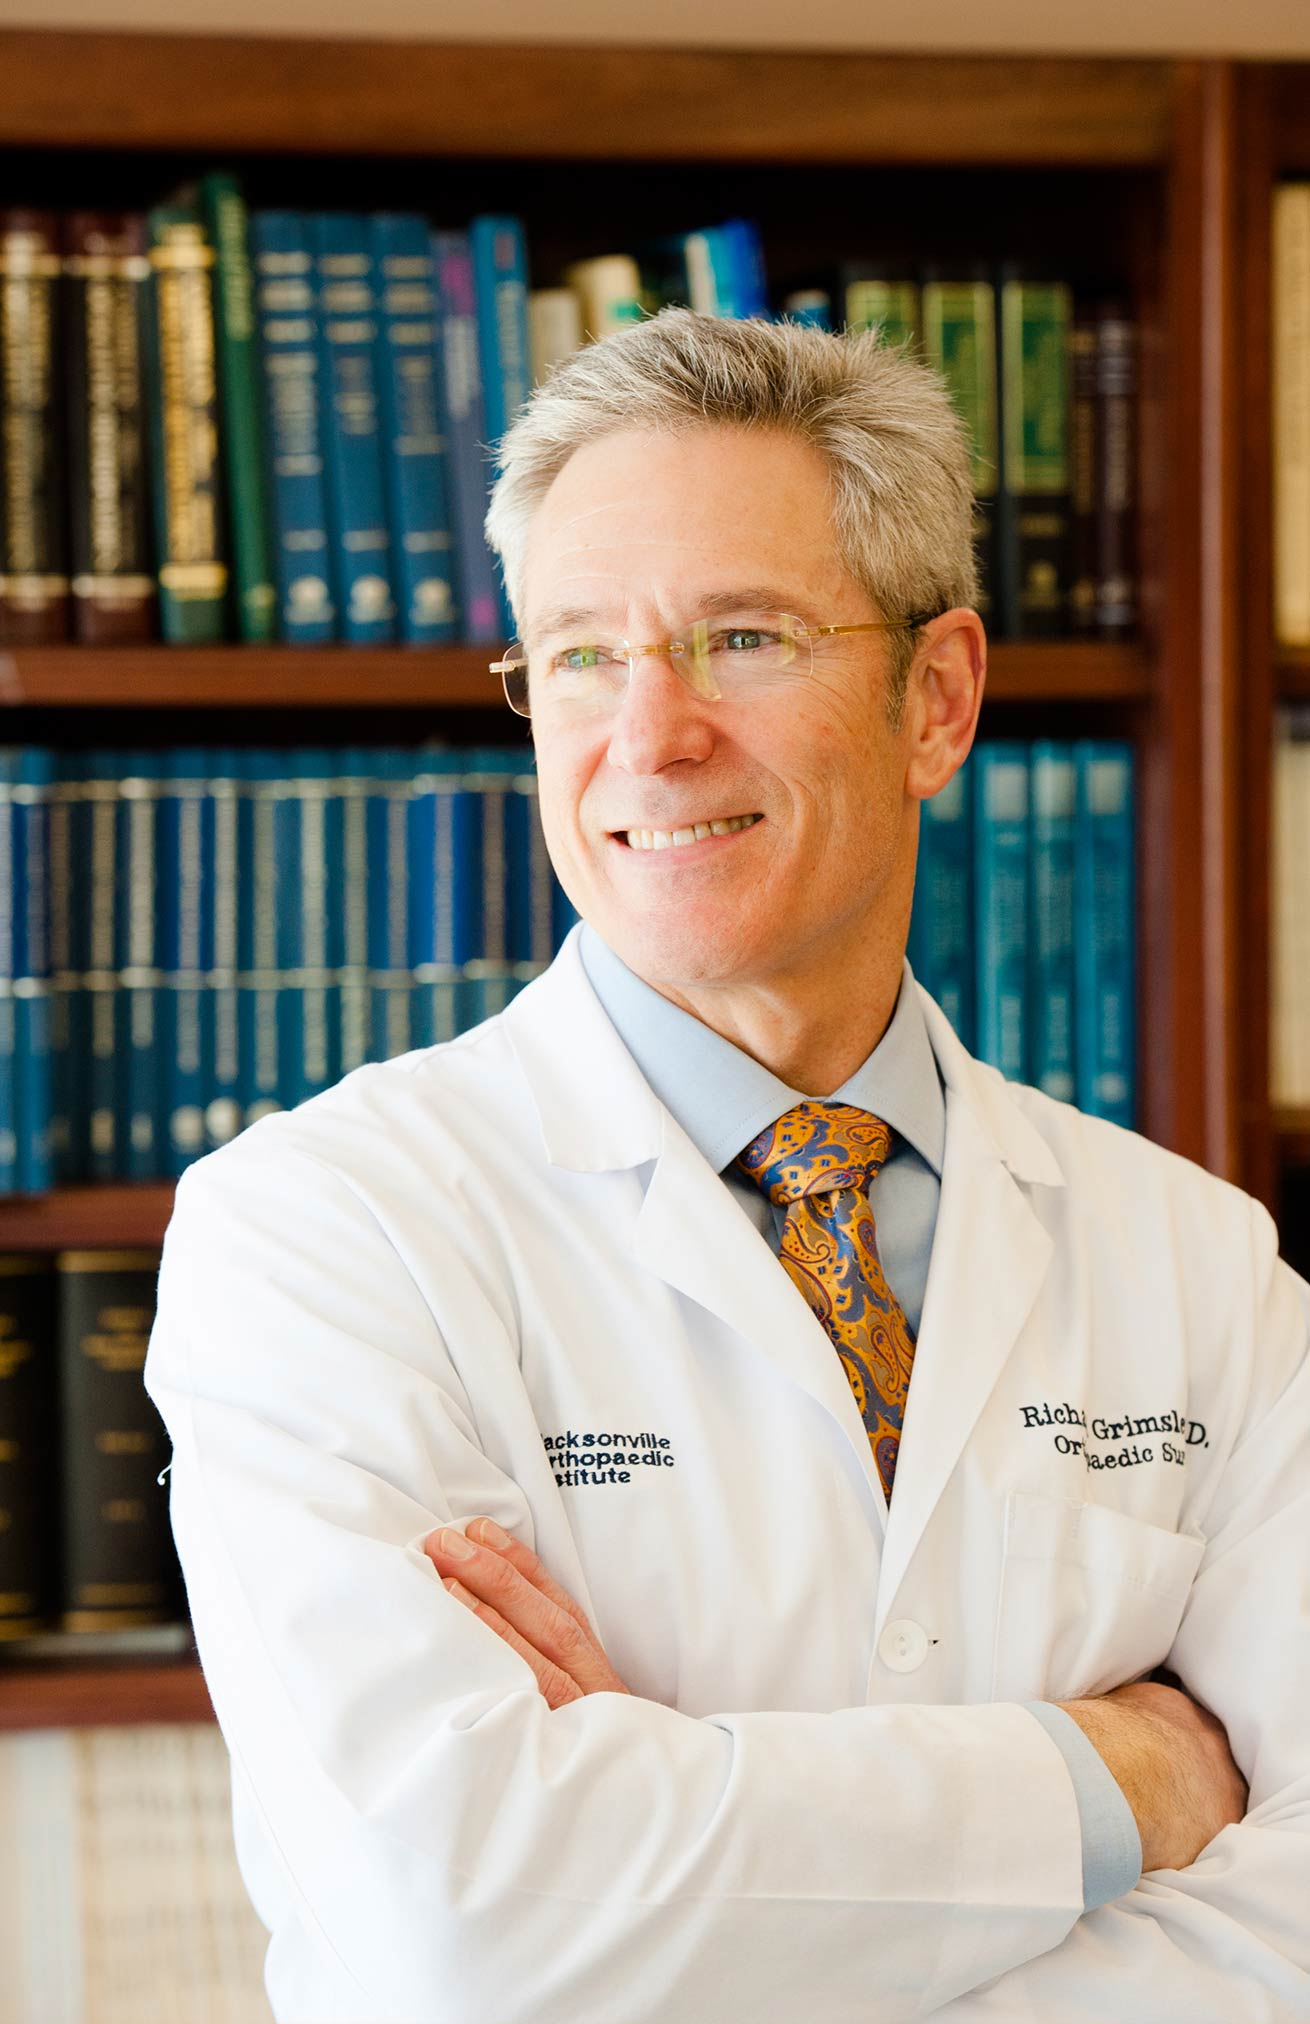 Dr_Richard_R_Grimsley_MD_Jacksonville_Orthopaedic_Institute